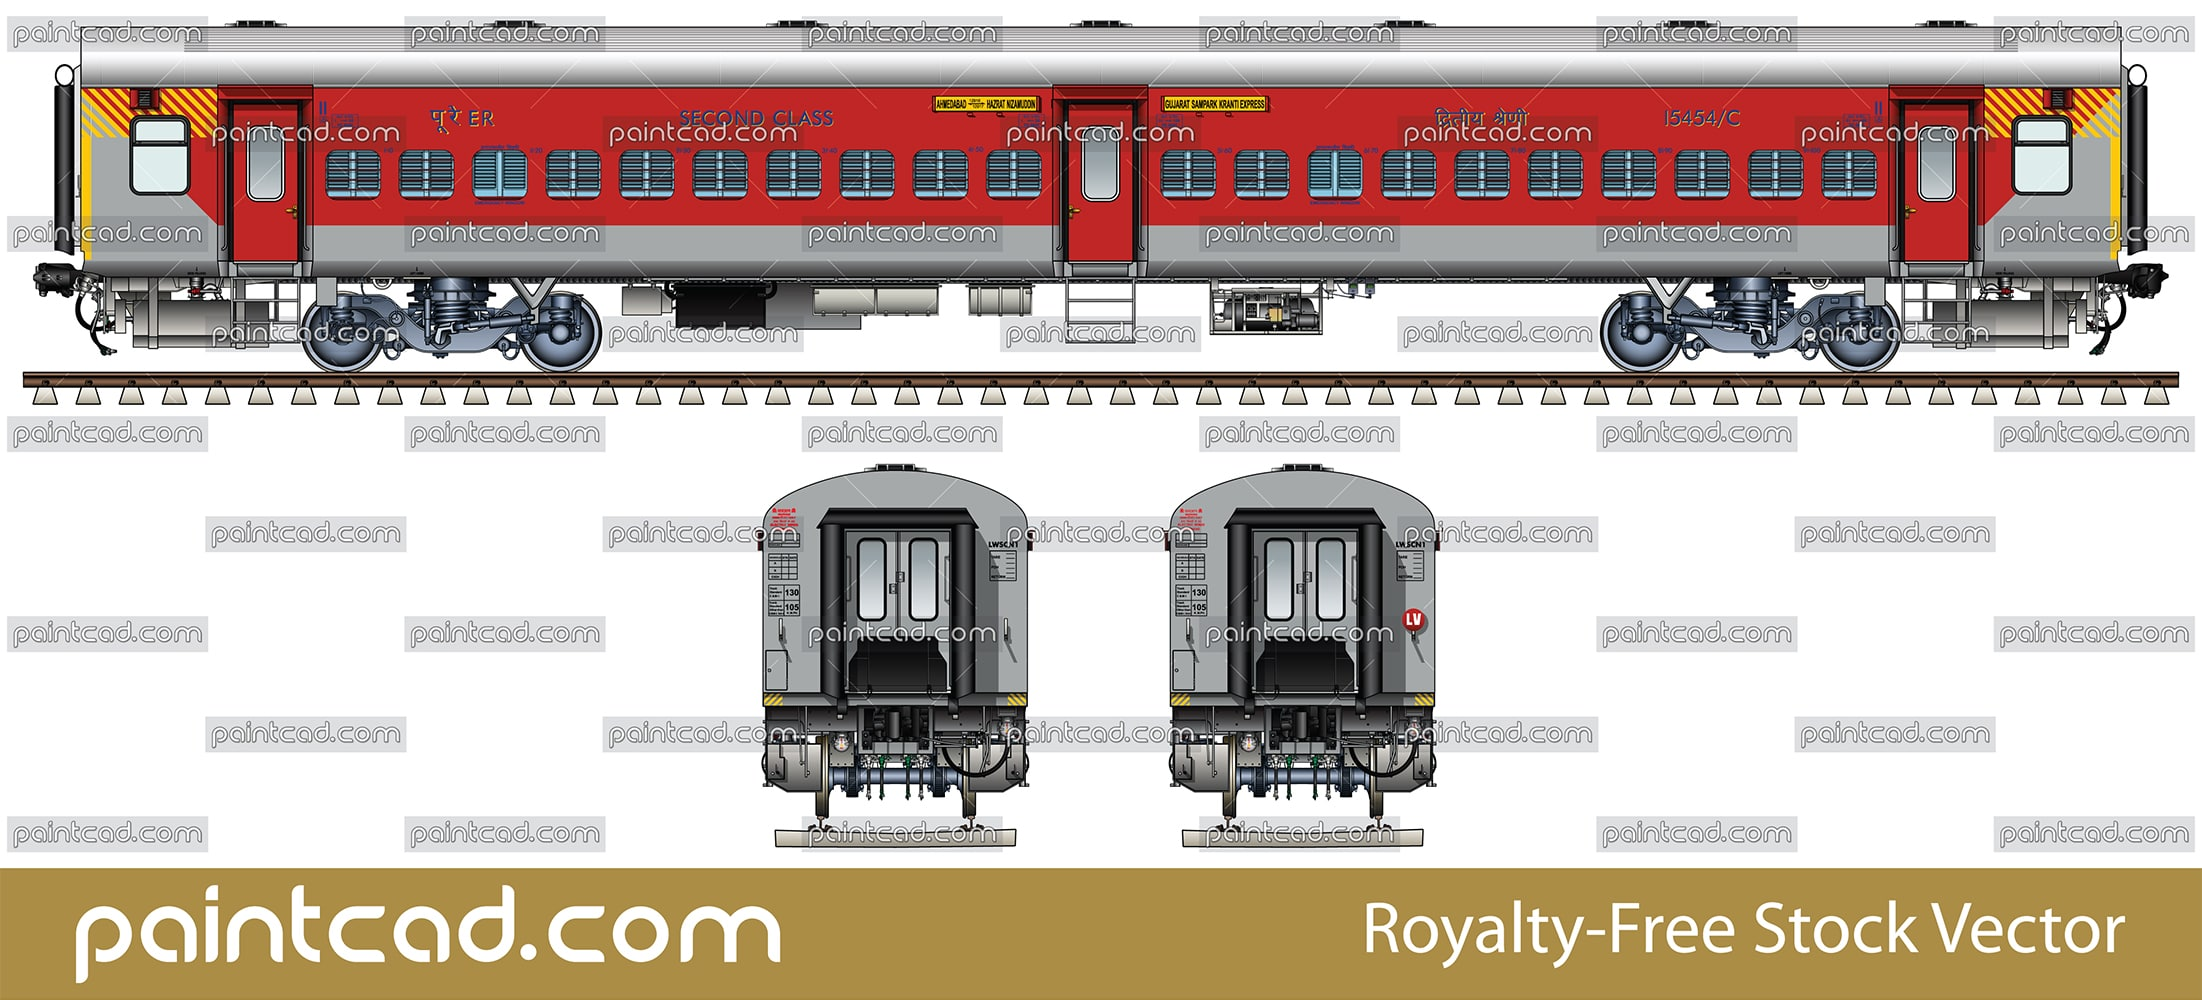 IMPORTANT: EDITORIAL USE ONLY! Vector illustration with side view of Indian General seat passenger car LHB (Linke Hofmann Busch) in livery of express train from Ahmedabad to Nizamuddin. 